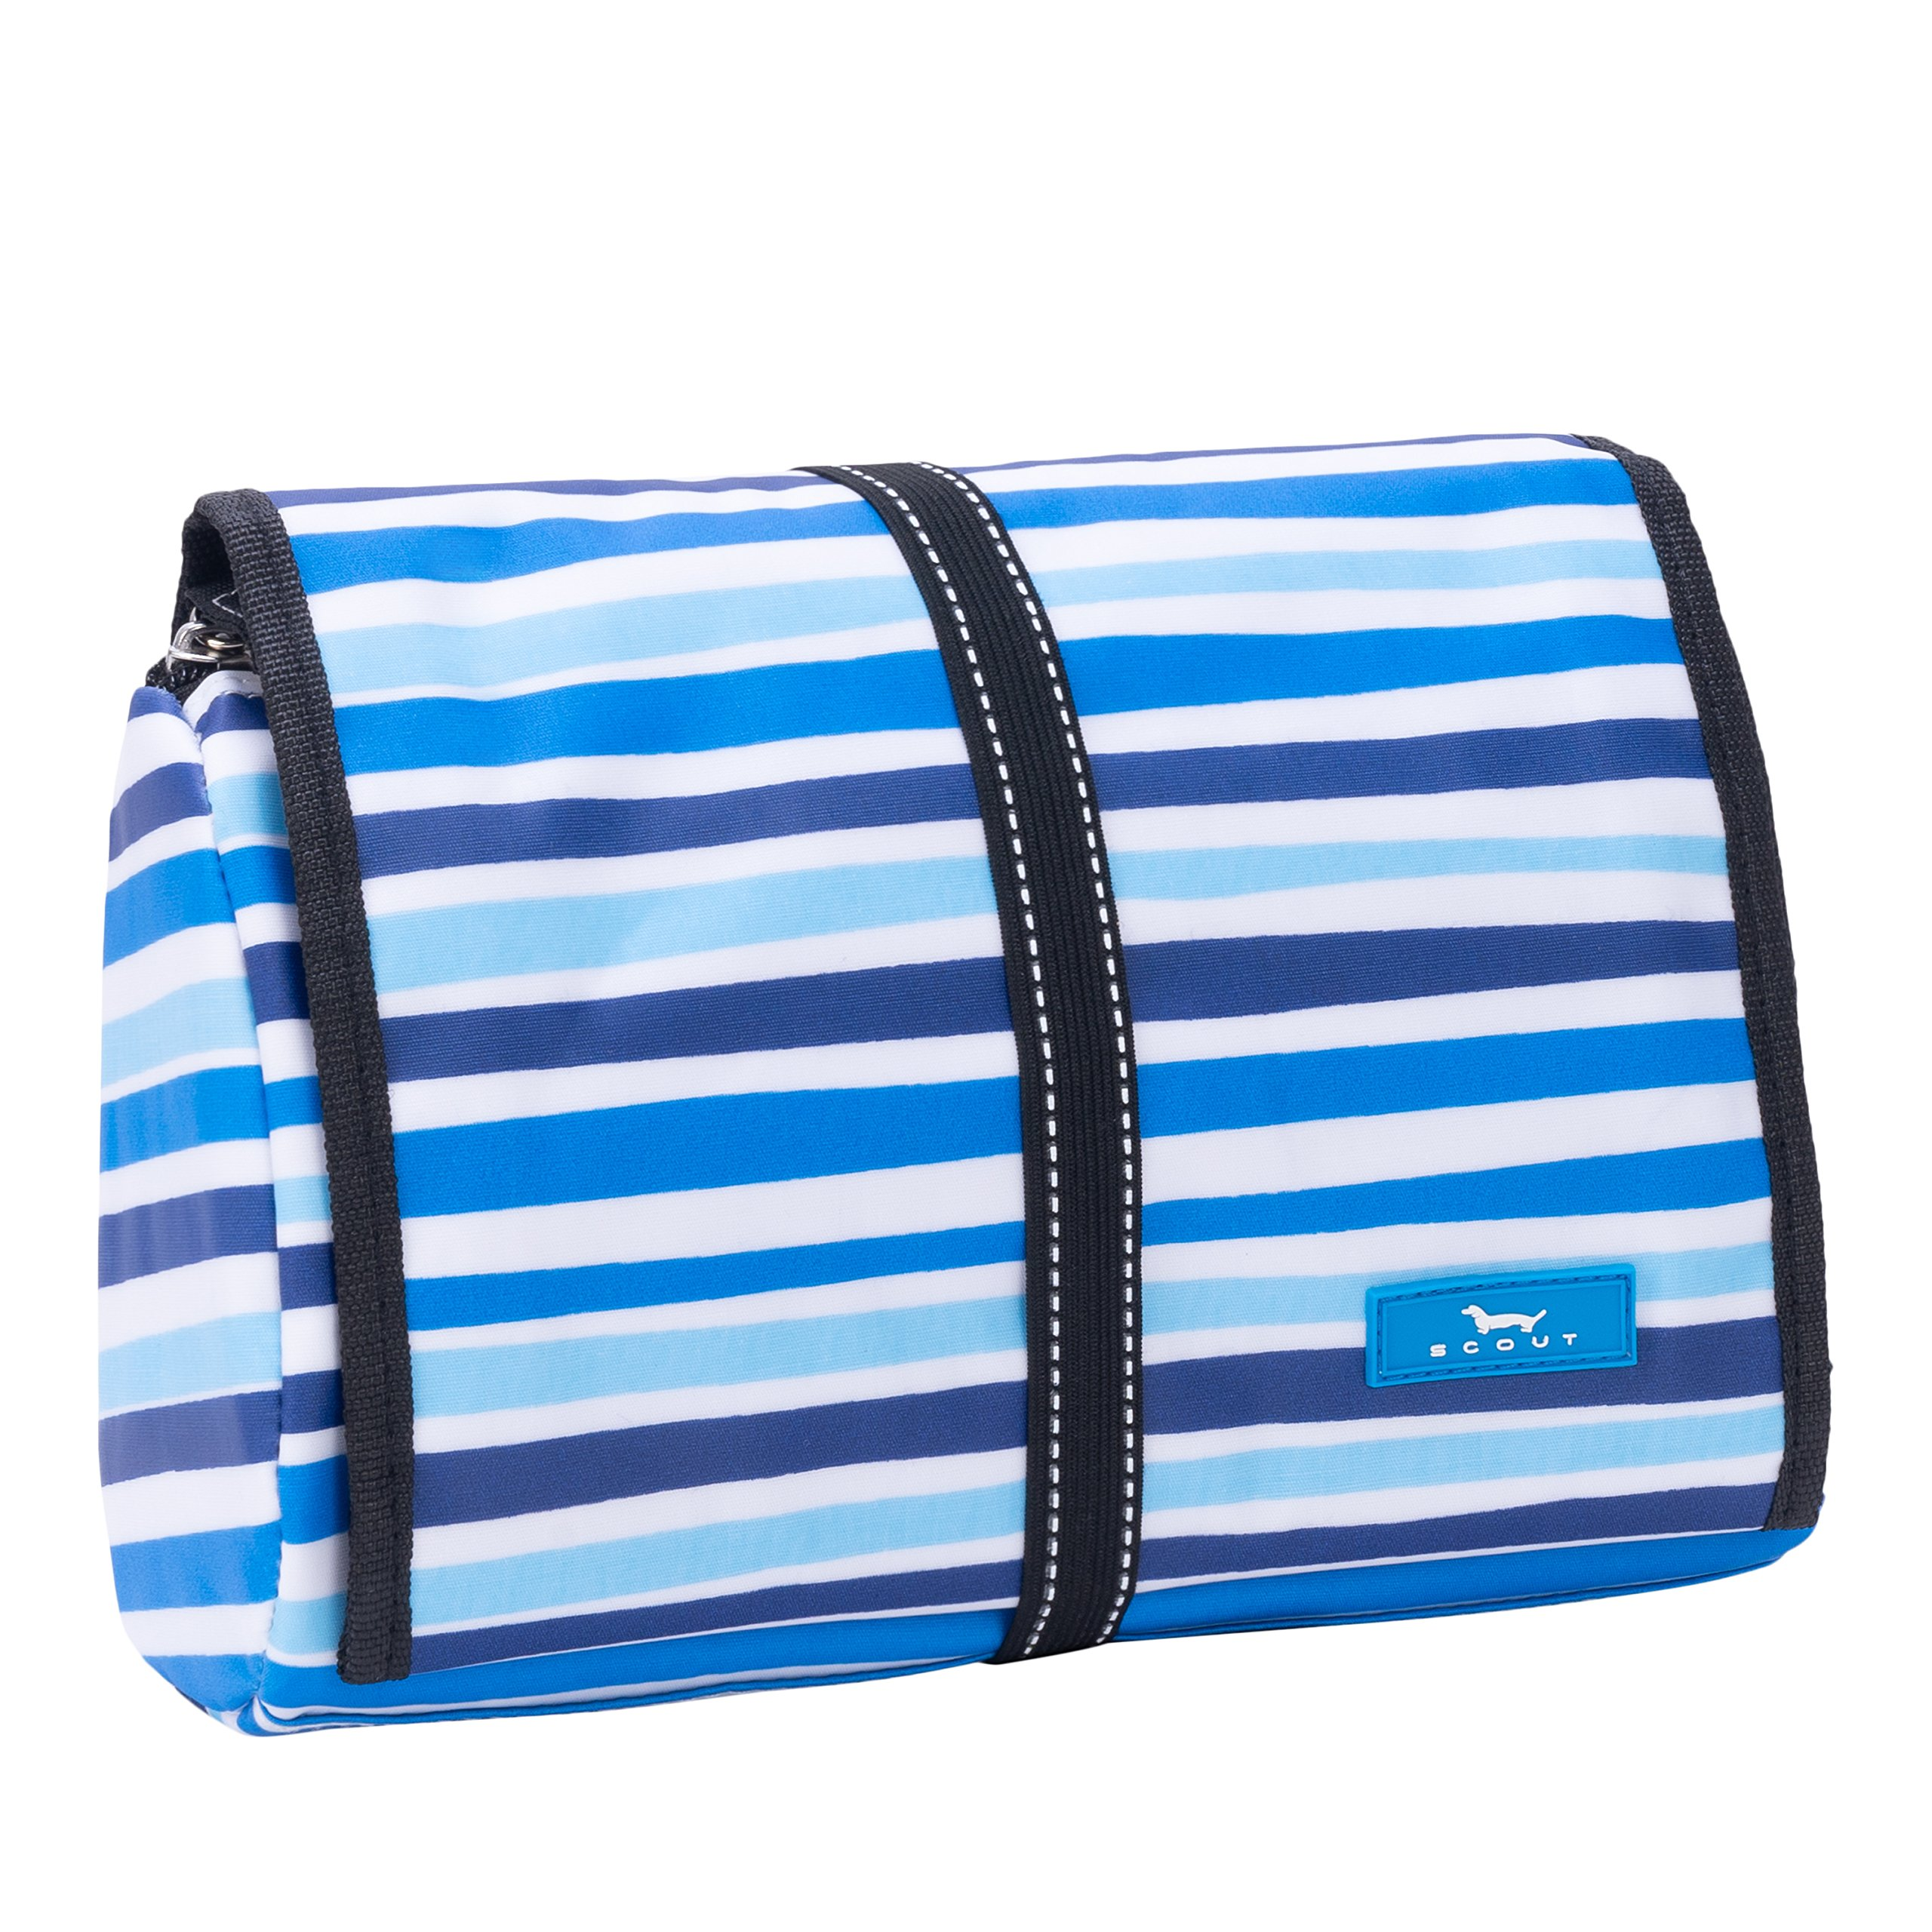 SCOUT Beauty Burrito Hanging Toiletry & Cosmetic Bag, Elastic Band Closure, Water Resistant, True Blue